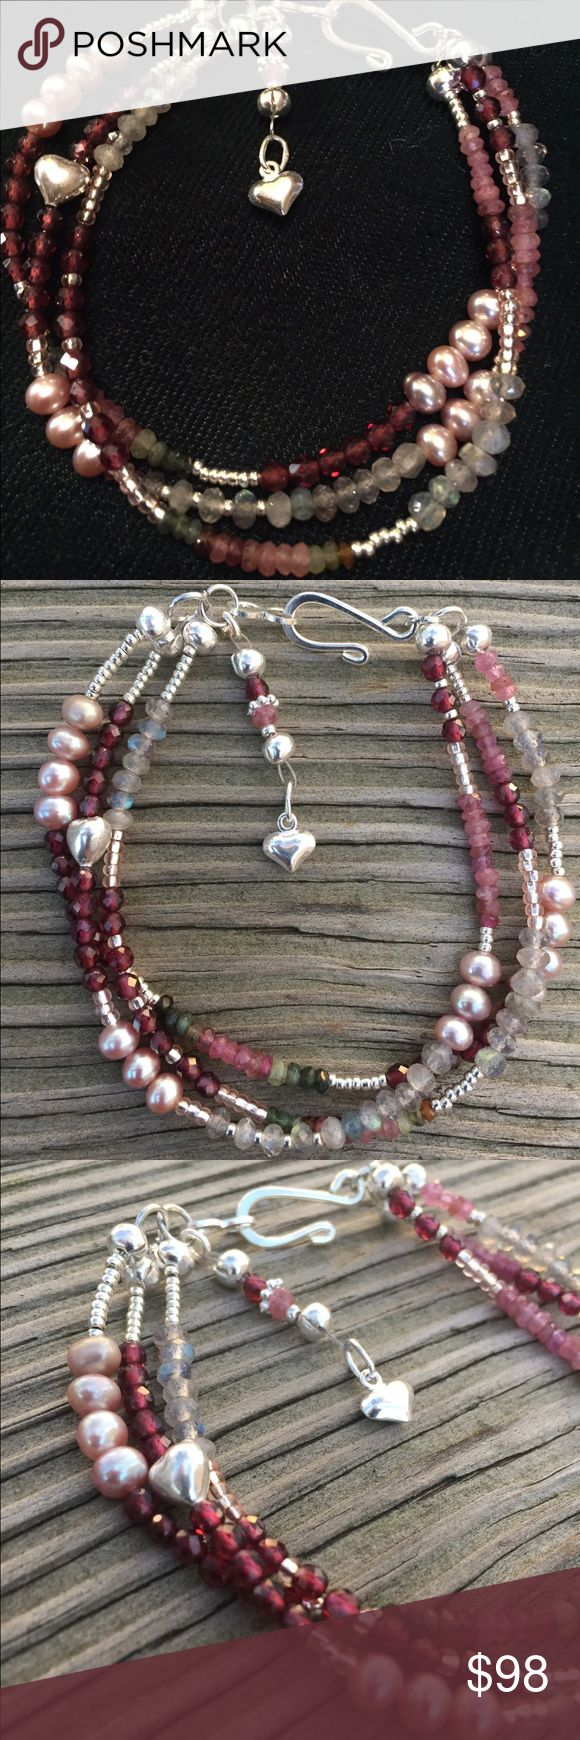 """💥NEW💥 """"Spring Dance"""" Bracelet A gorgeous triple strand bracelet with genuine, grade A garnet, labradorite, freshwater cultured pearls, tourmaline and sterling silver clasp and heart charm. Colorful, but understated and petite. All of my work is one of a kind and comes with a gift box. Also, price is significantly lower on Etsy. 🌹 Thank you for taking a closer look!! Brindleracer Designs Jewelry Bracelets"""